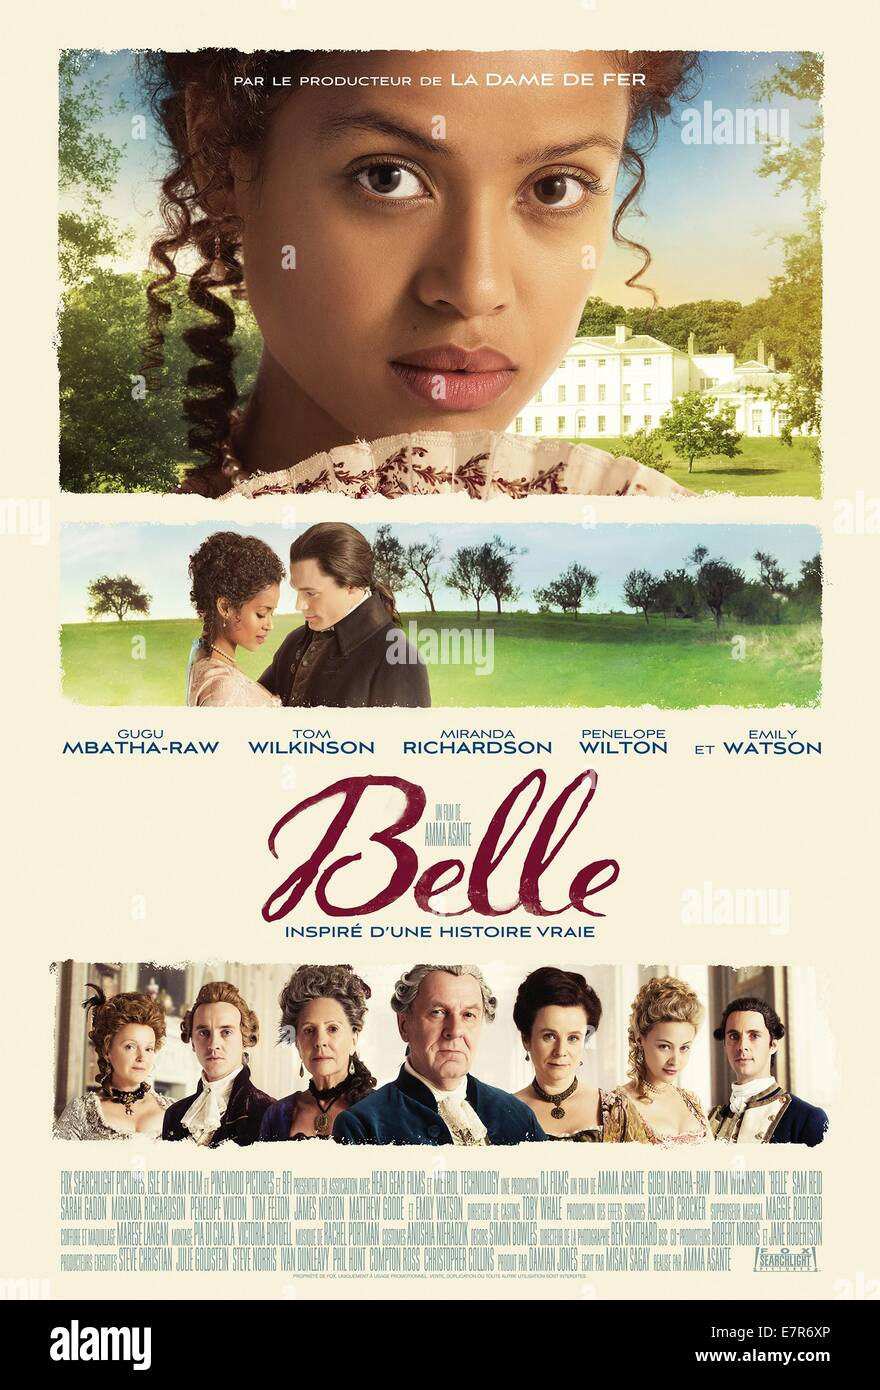 Belle Year : 2013 UK Director : Amma Asante Gugu Mbatha-Raw - Stock Image